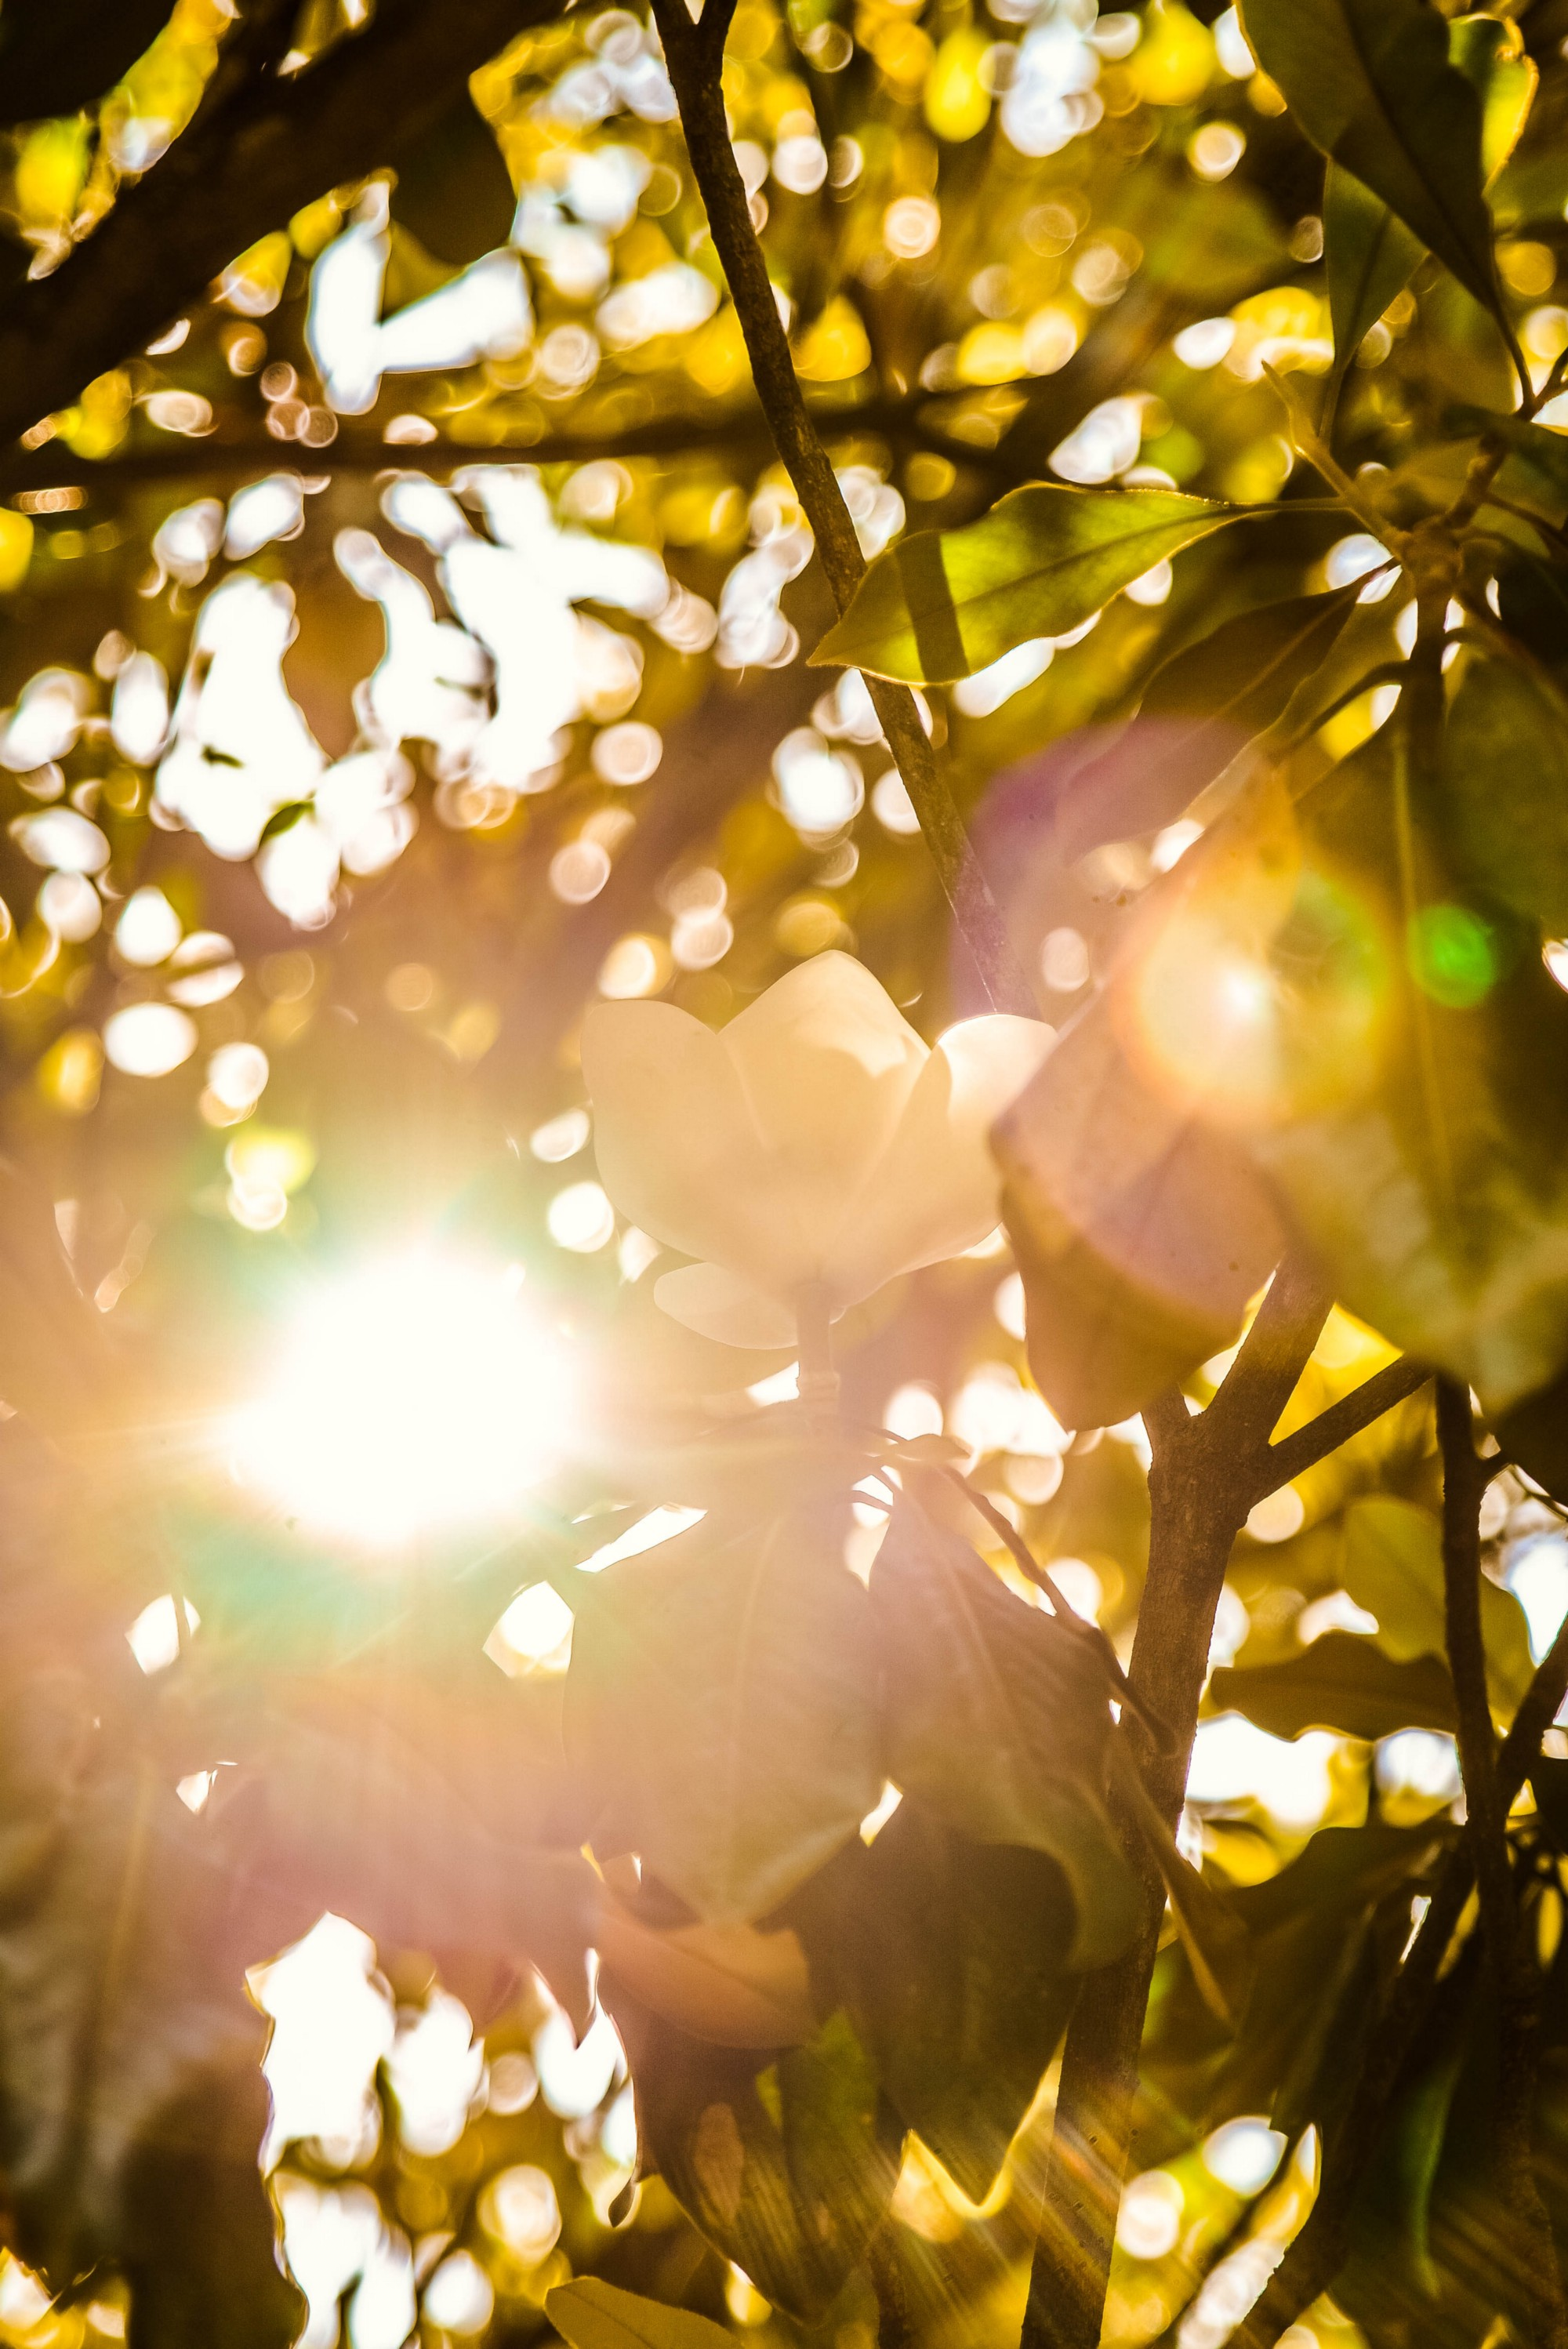 Sunlight beaming through branches of a tree, highlighting golden, pink, green colors.